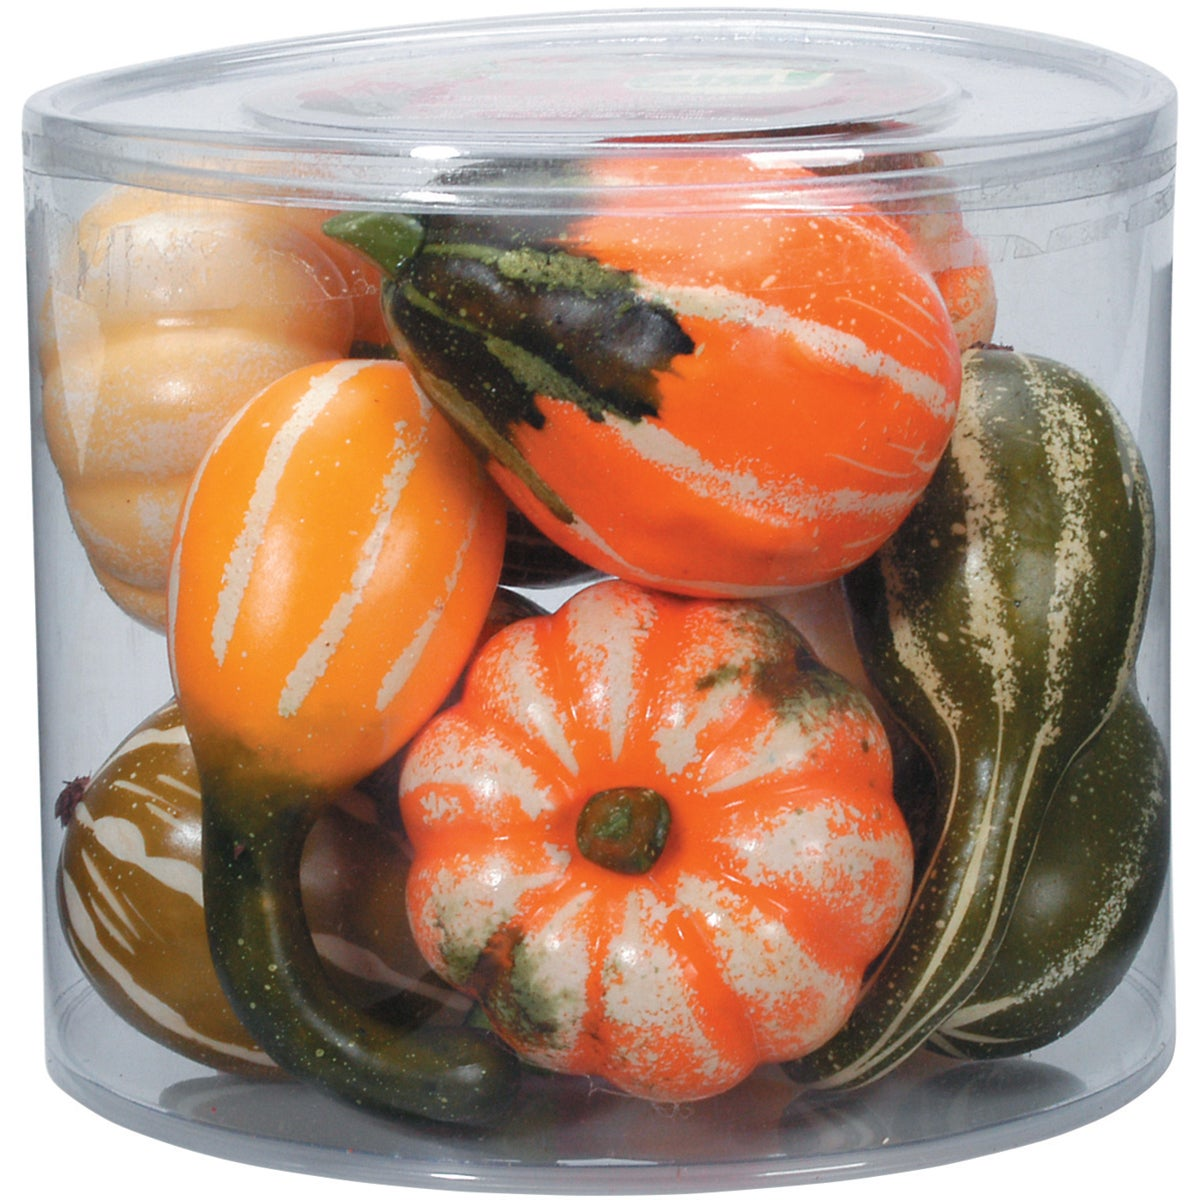 DARICE Mixed Gourds 12/Pkg (12/pkg), Multi (Plastic)